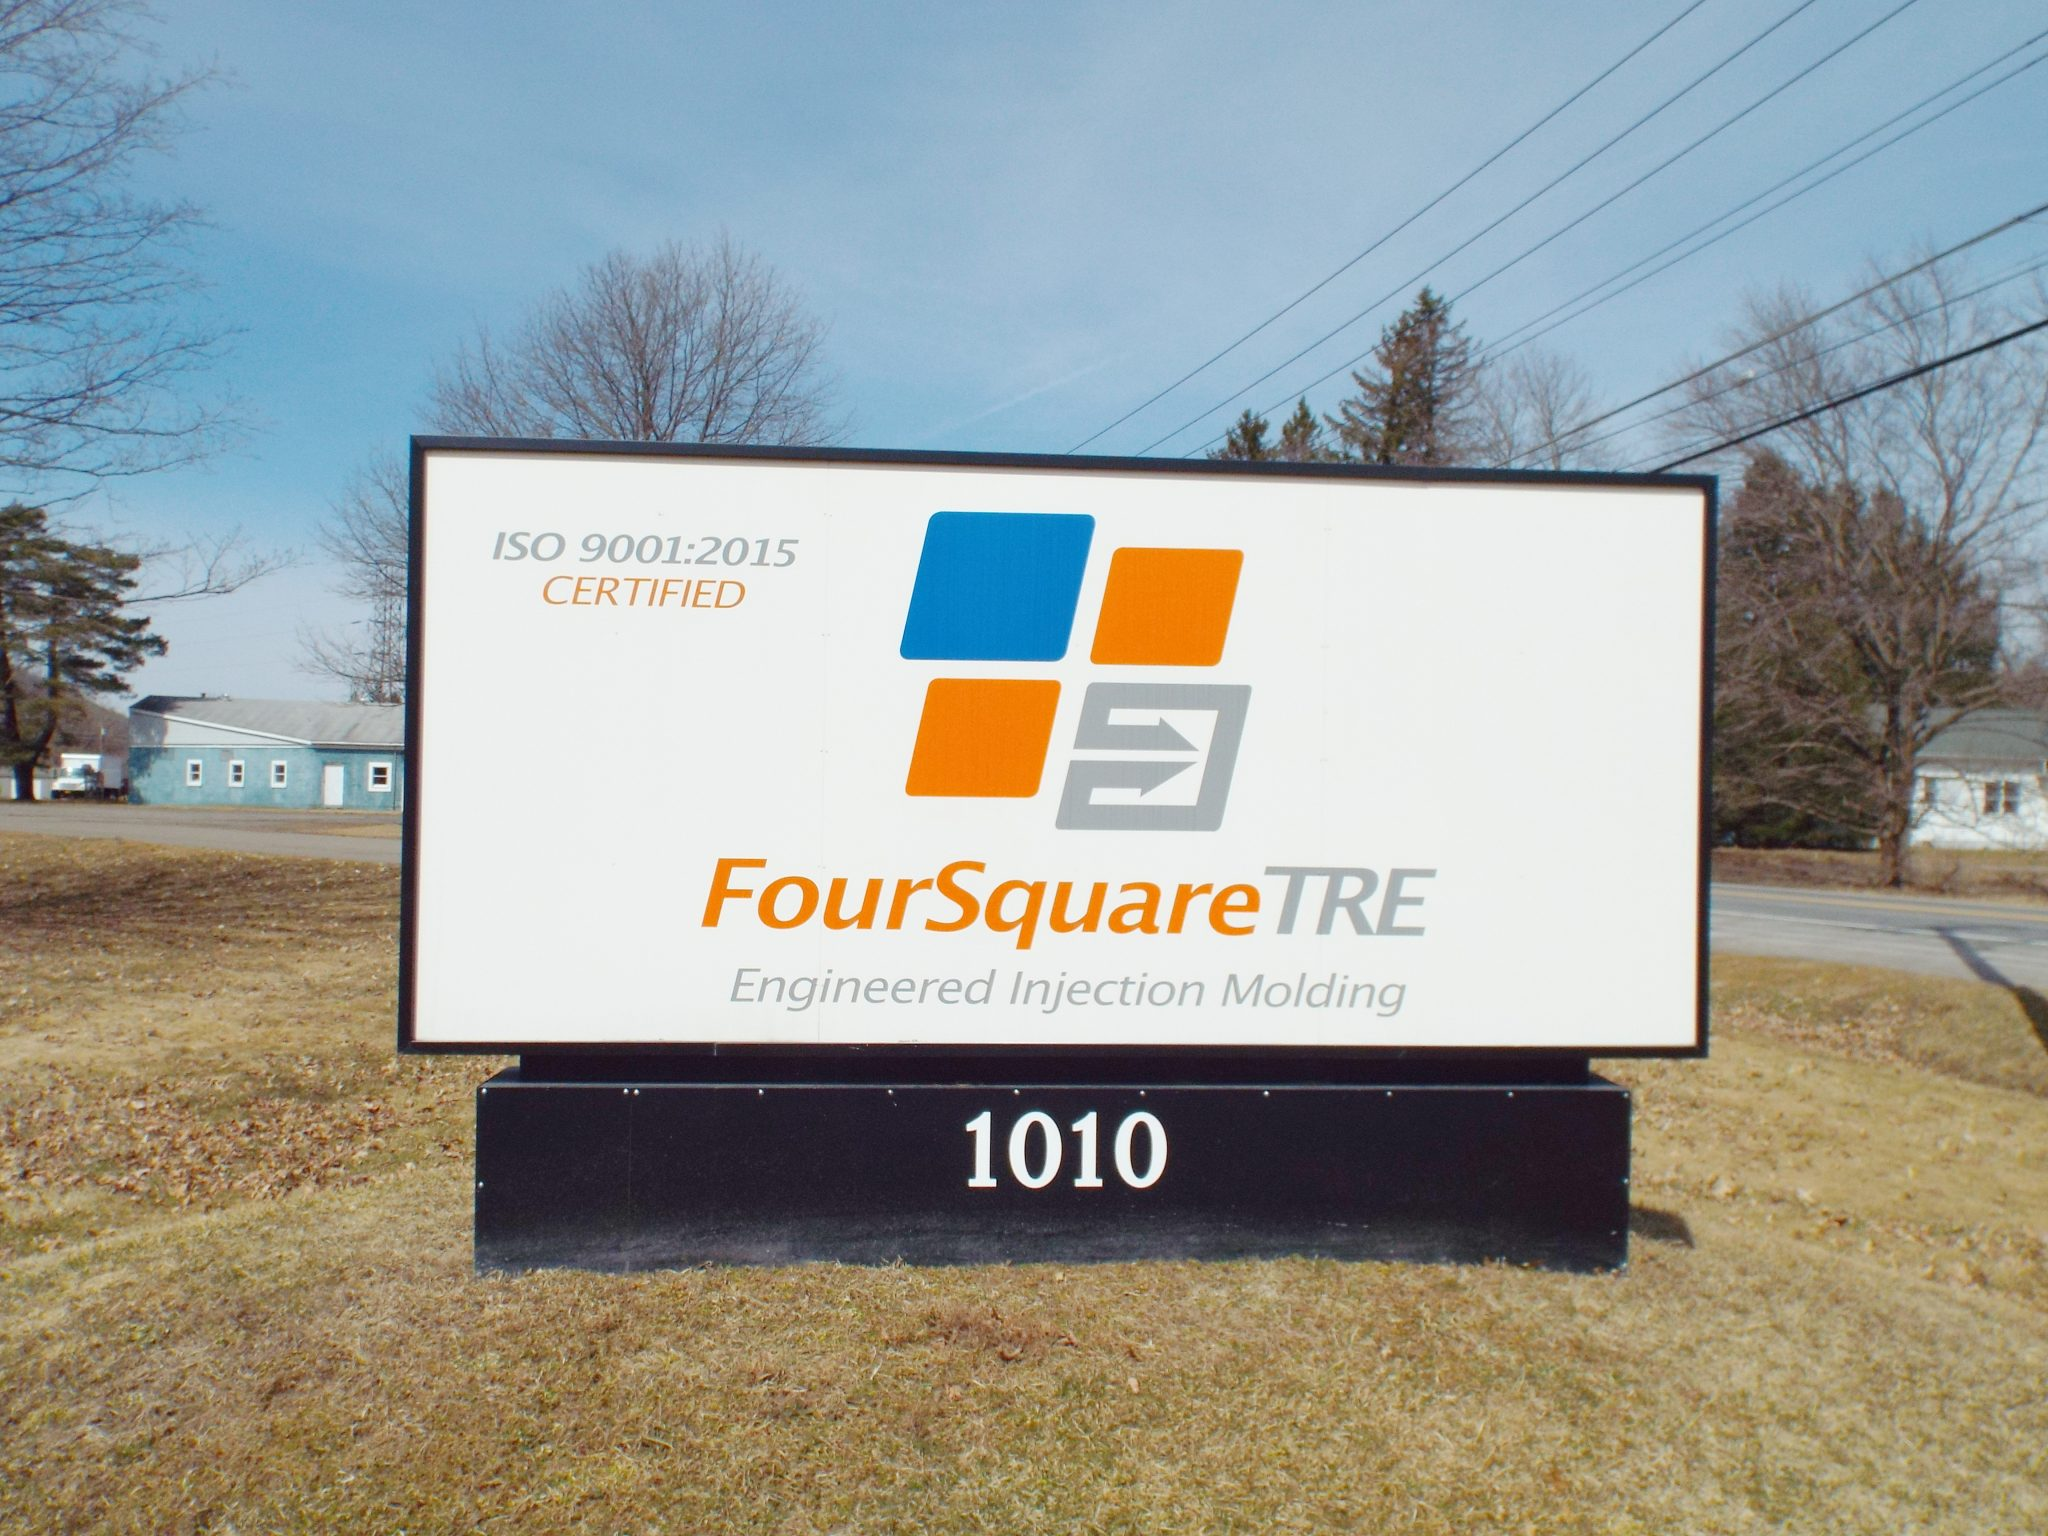 Success Story - FOURSQUARE/TRE Reaps the Benefits of ISO Certification